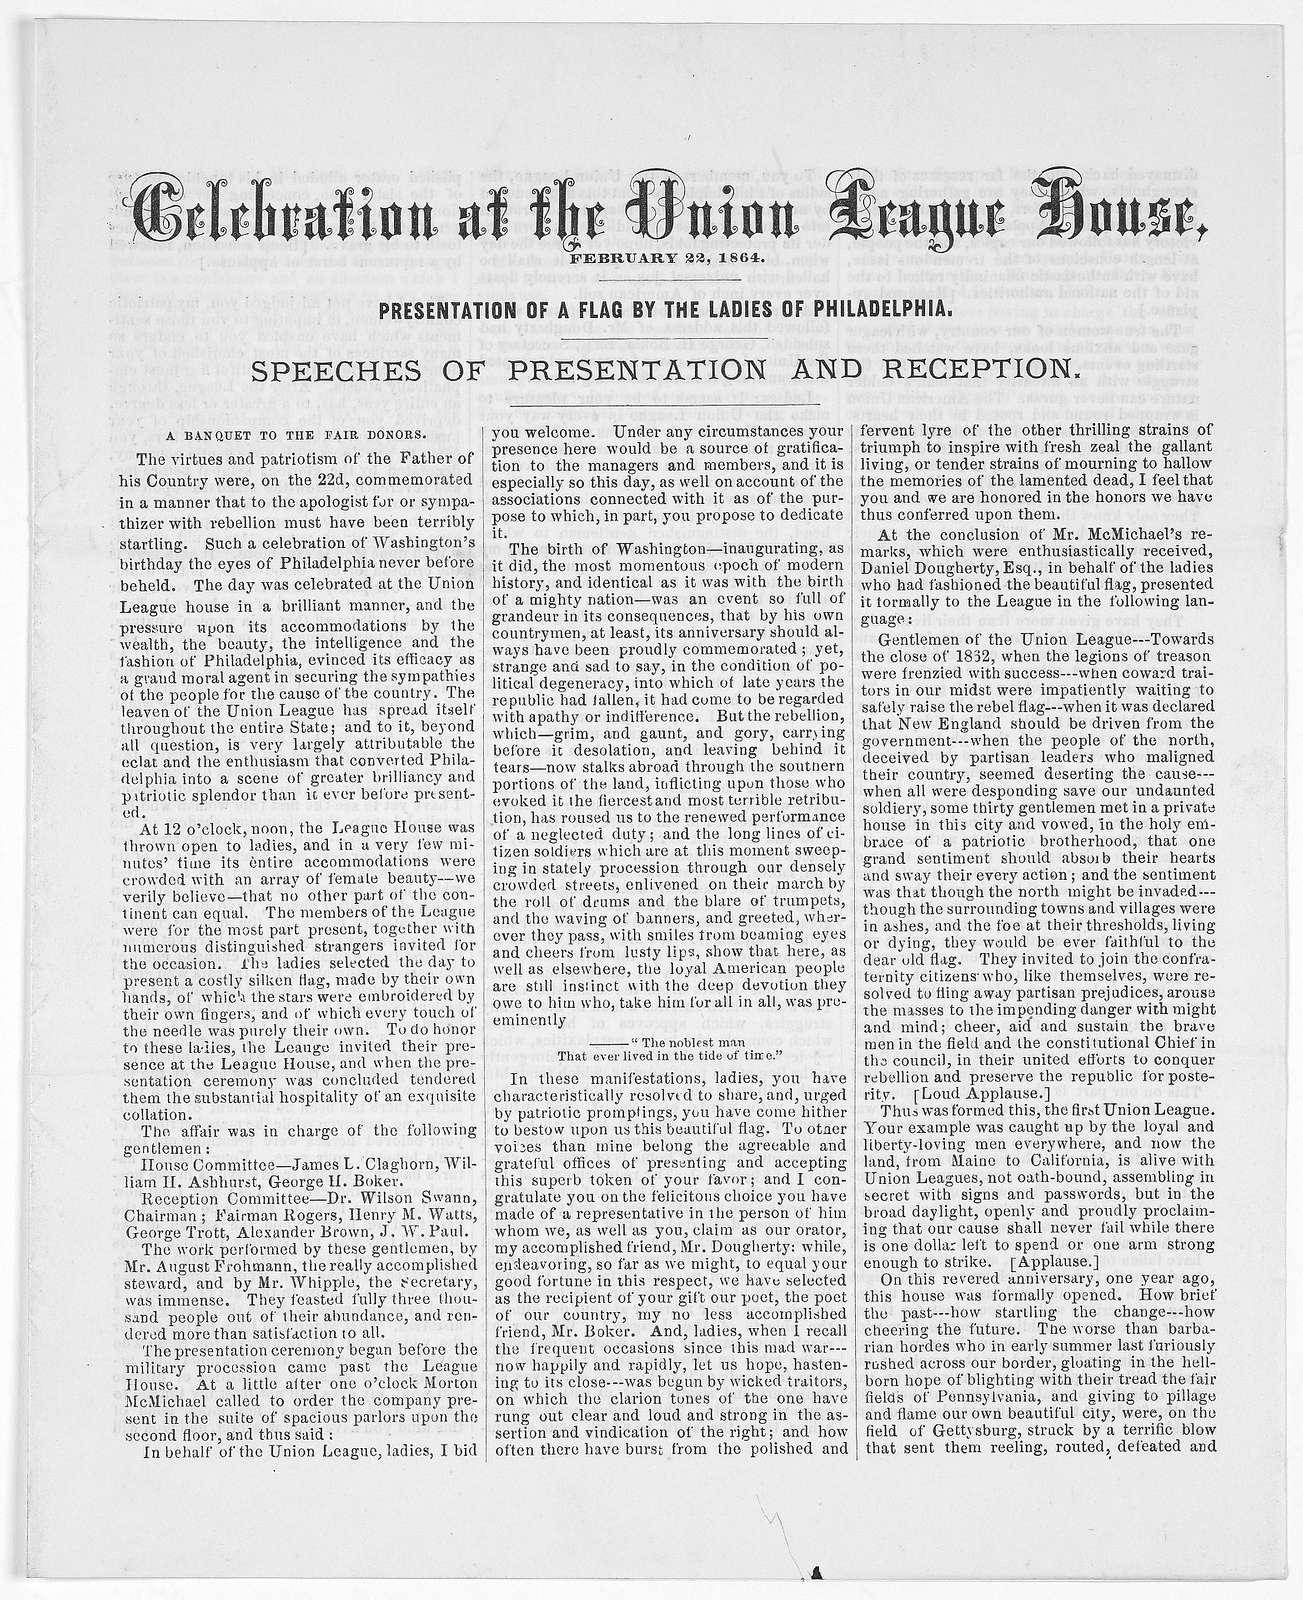 Celebration at the Union League house, February 22, 1864. Presentation of flag by the ladies of Philadelphia. Speeches of presentation and reception,. Philadelphia, 1864.